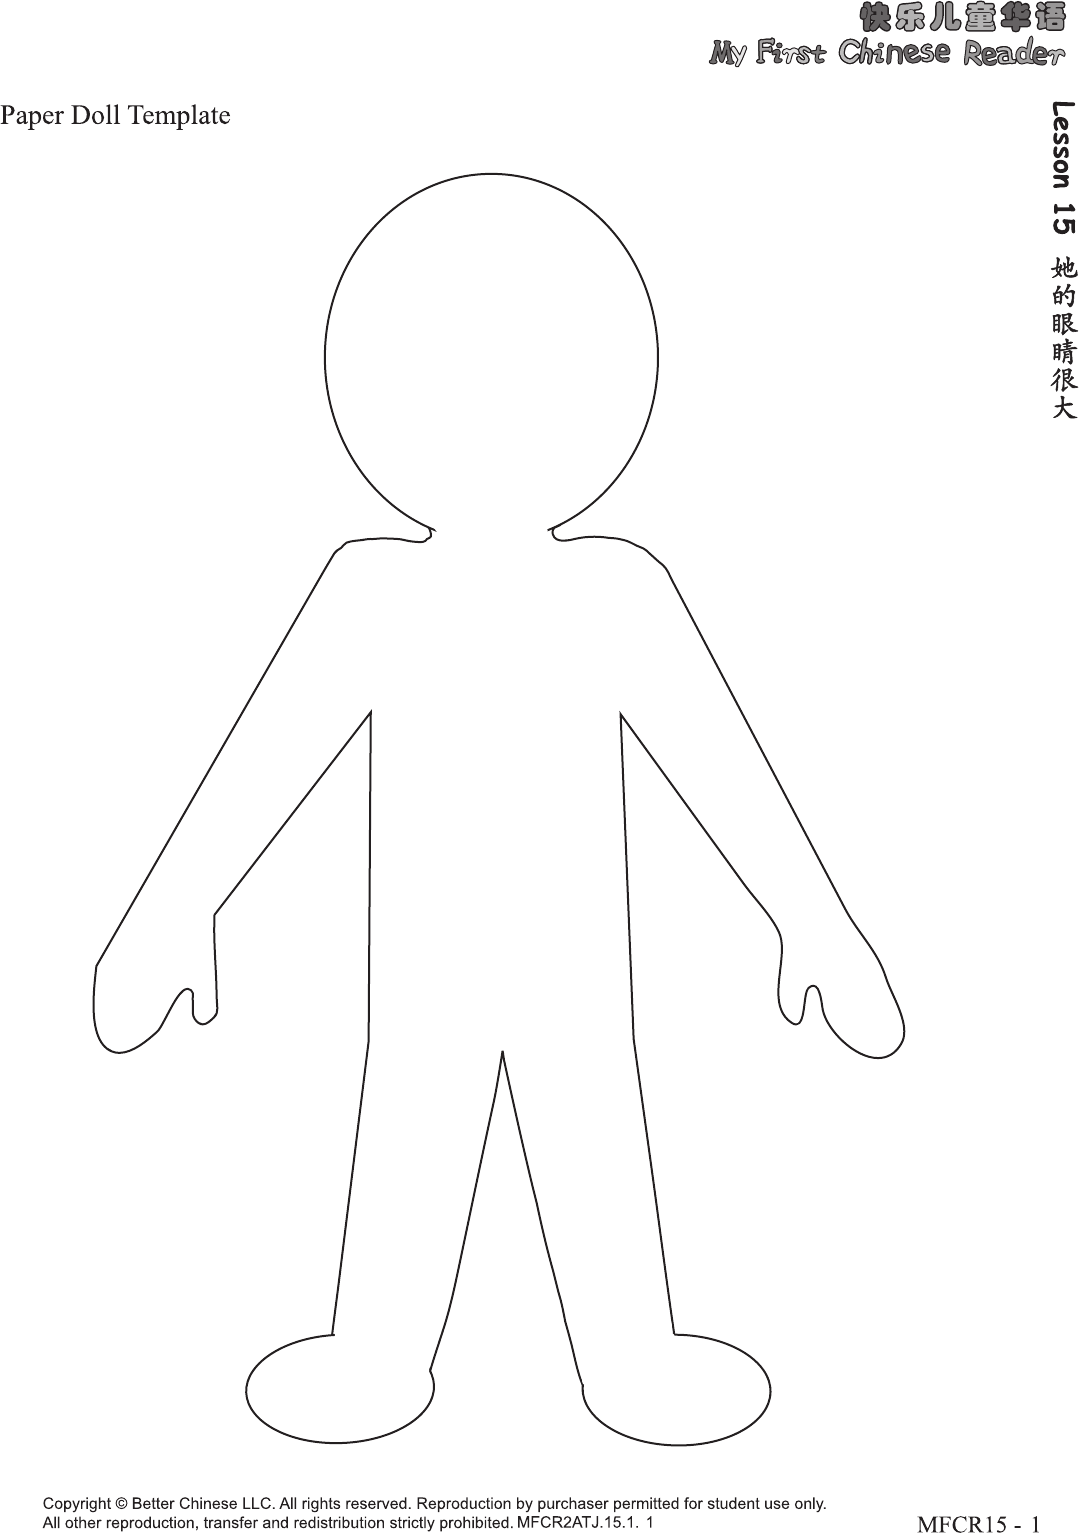 photo relating to Printable Paper Doll Template titled Printable Paper Doll Template Absolutely free Boy Lady Printables Hair